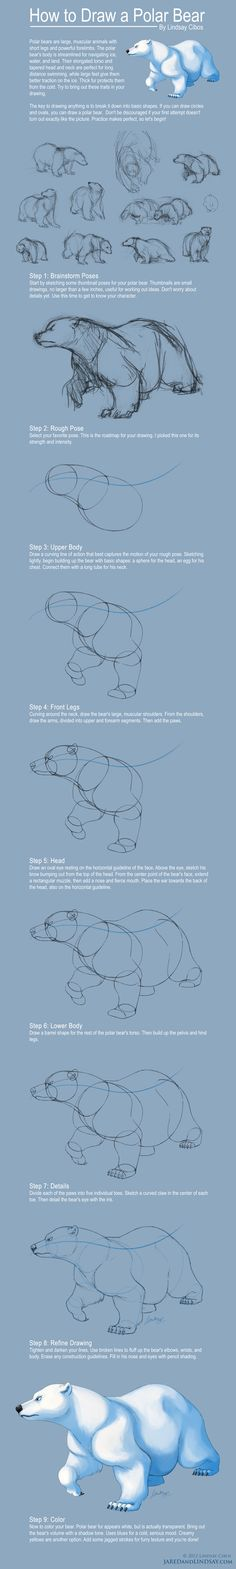 How to Draw a Polar Bear by LCibos.deviantart.com on @deviantART